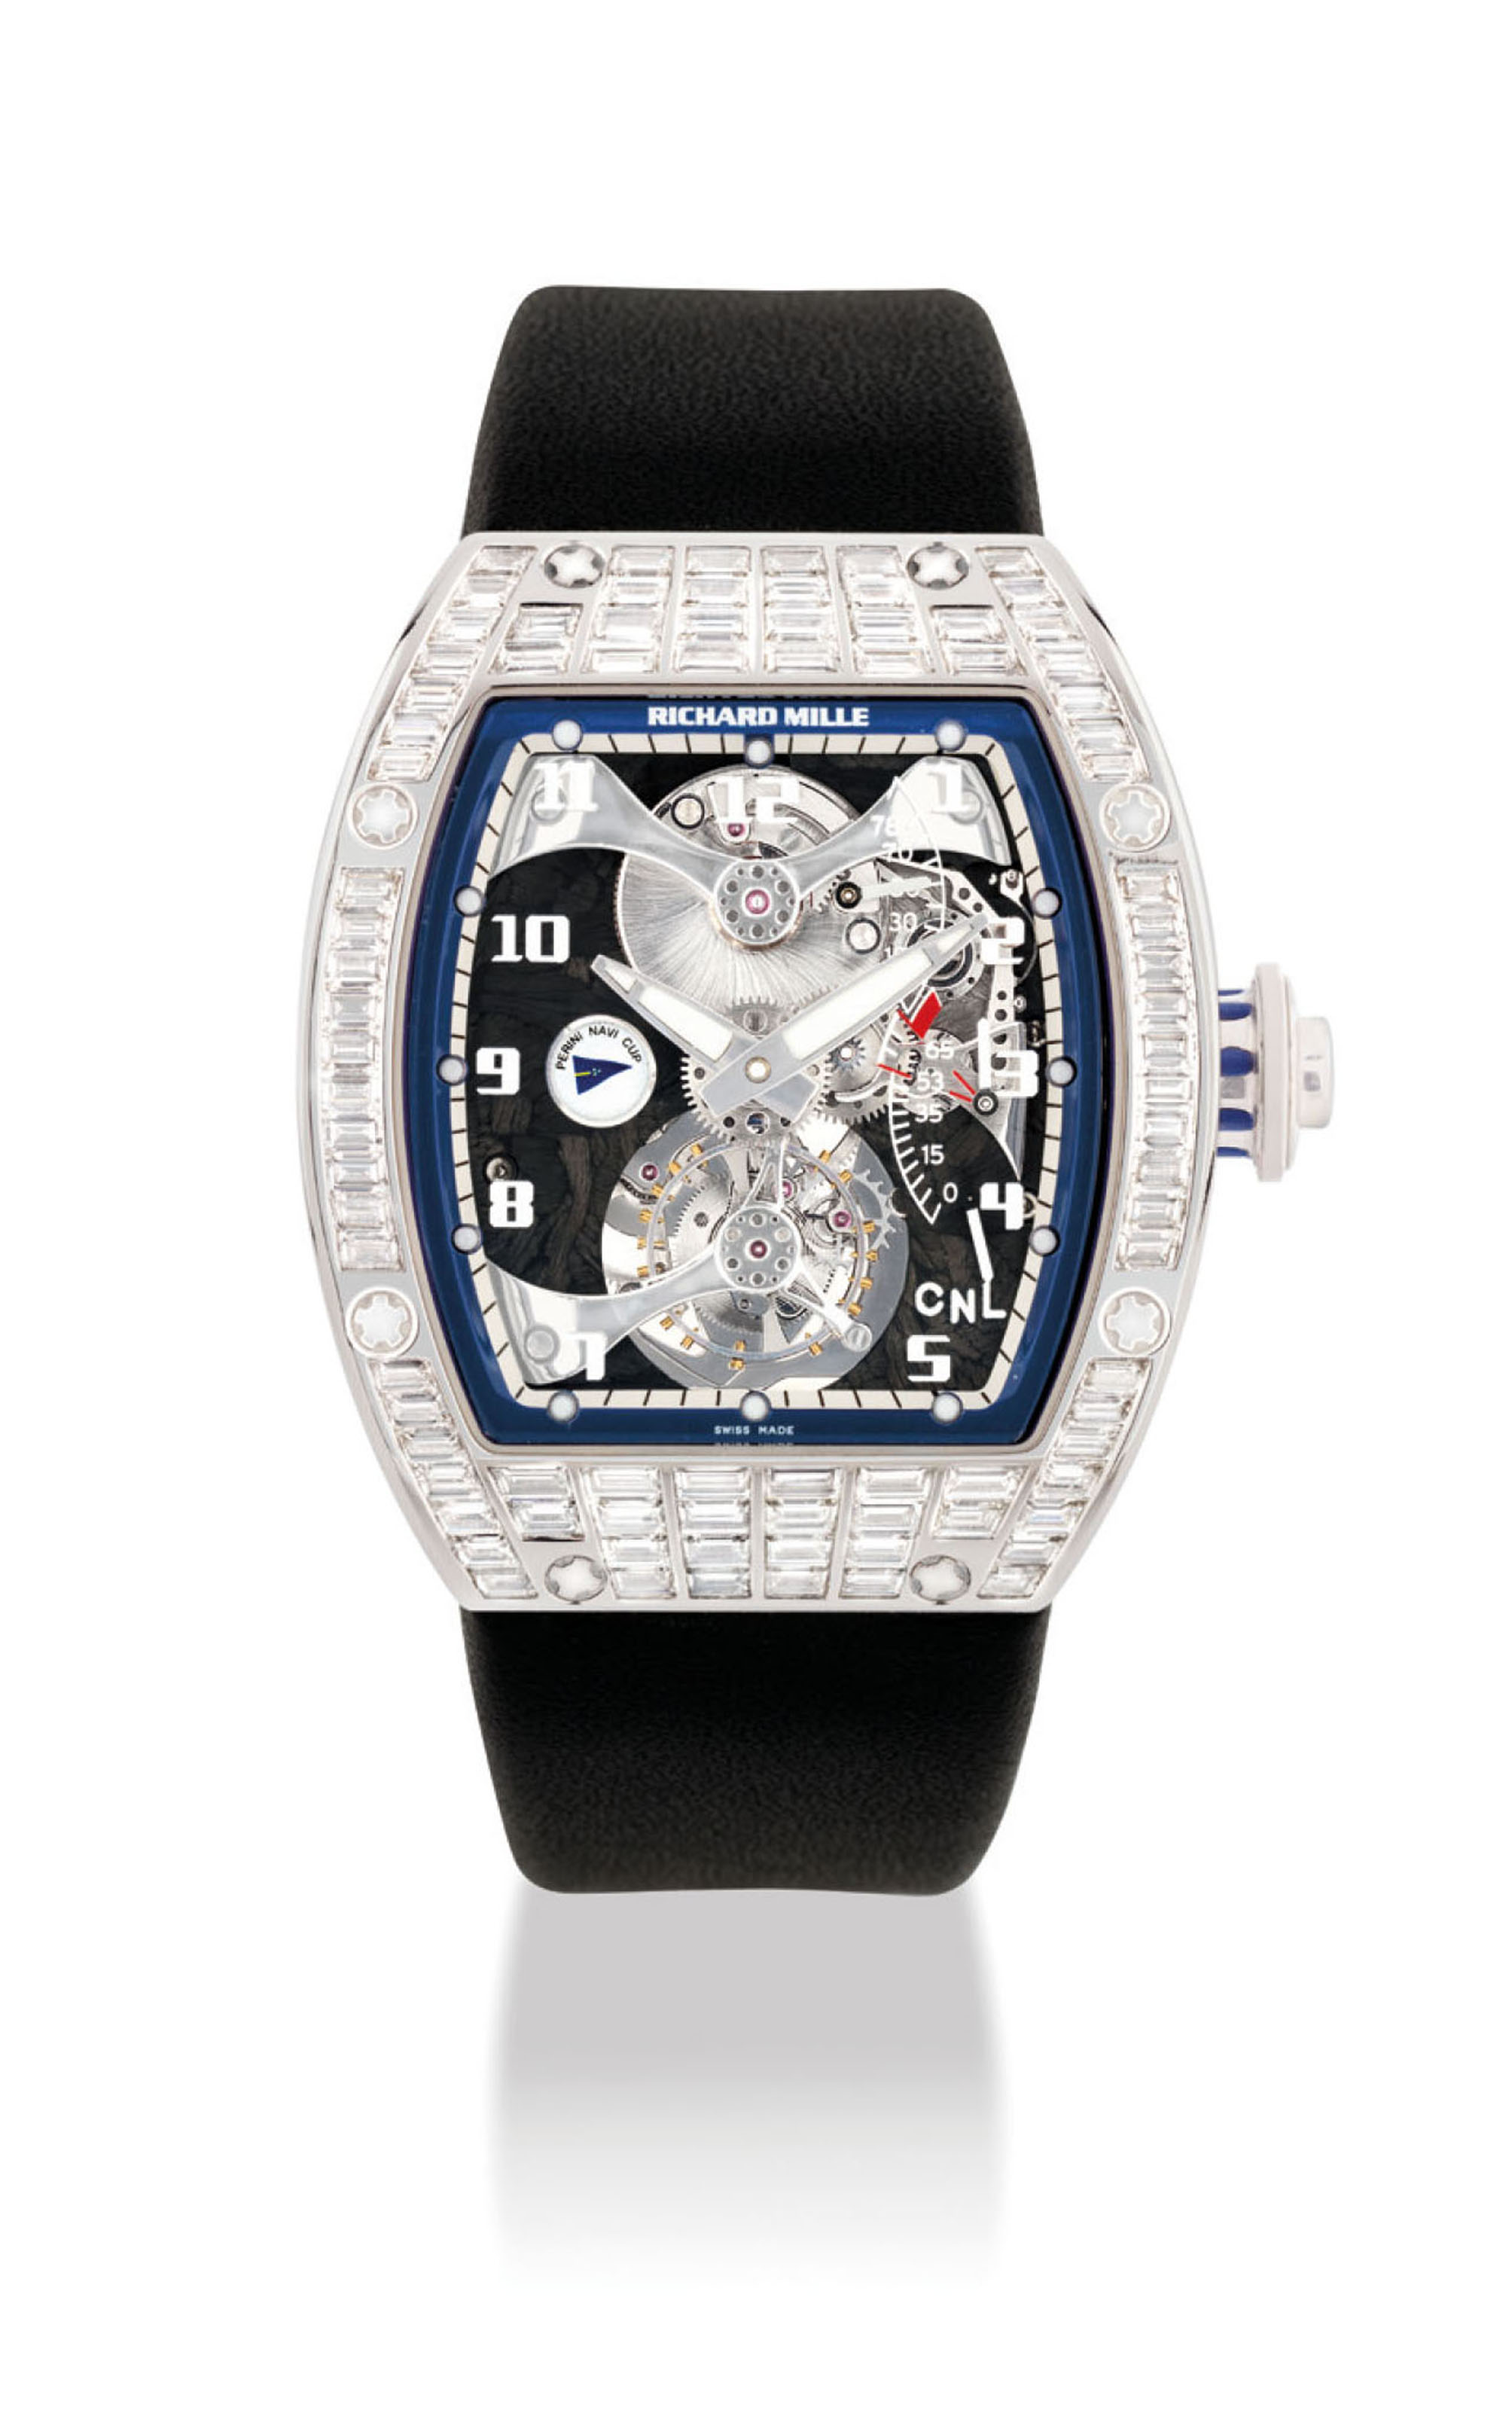 RICHARD MILLE. AN EXTREMELY RARE AND FINE PLATINUM AND BAGUETTE-CUT DIAMOND-SET TOURBILLON WRISTWATCH WITH TORQUE INDICATOR AND POWER RESERVE